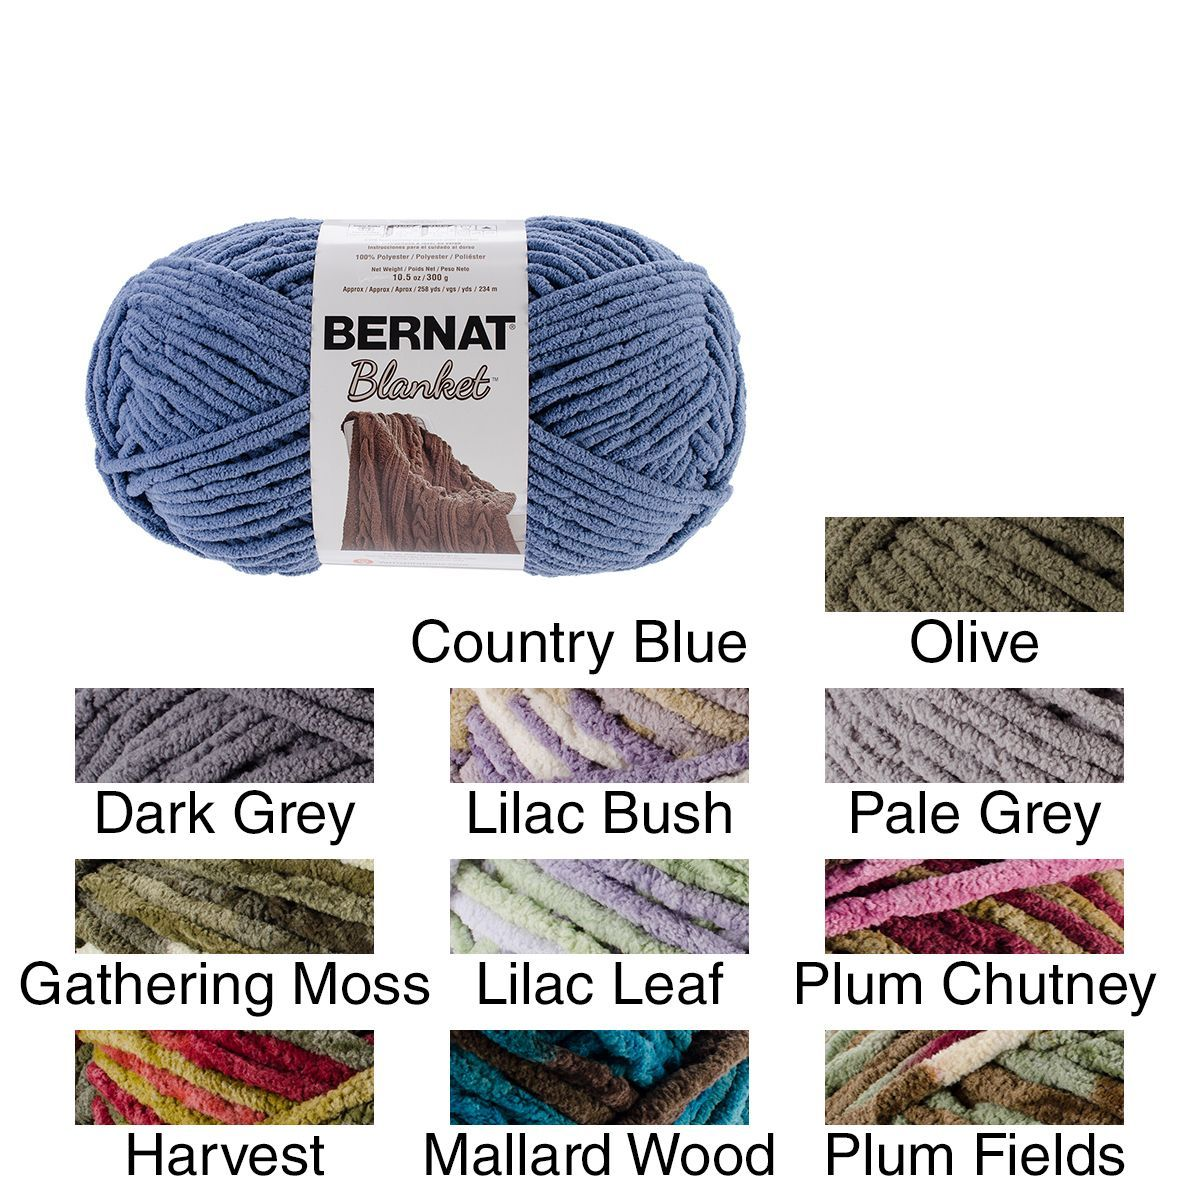 Bernat Blanket Big Ball Yarn (Country Blue) | Bernat Yarn Crochet ...